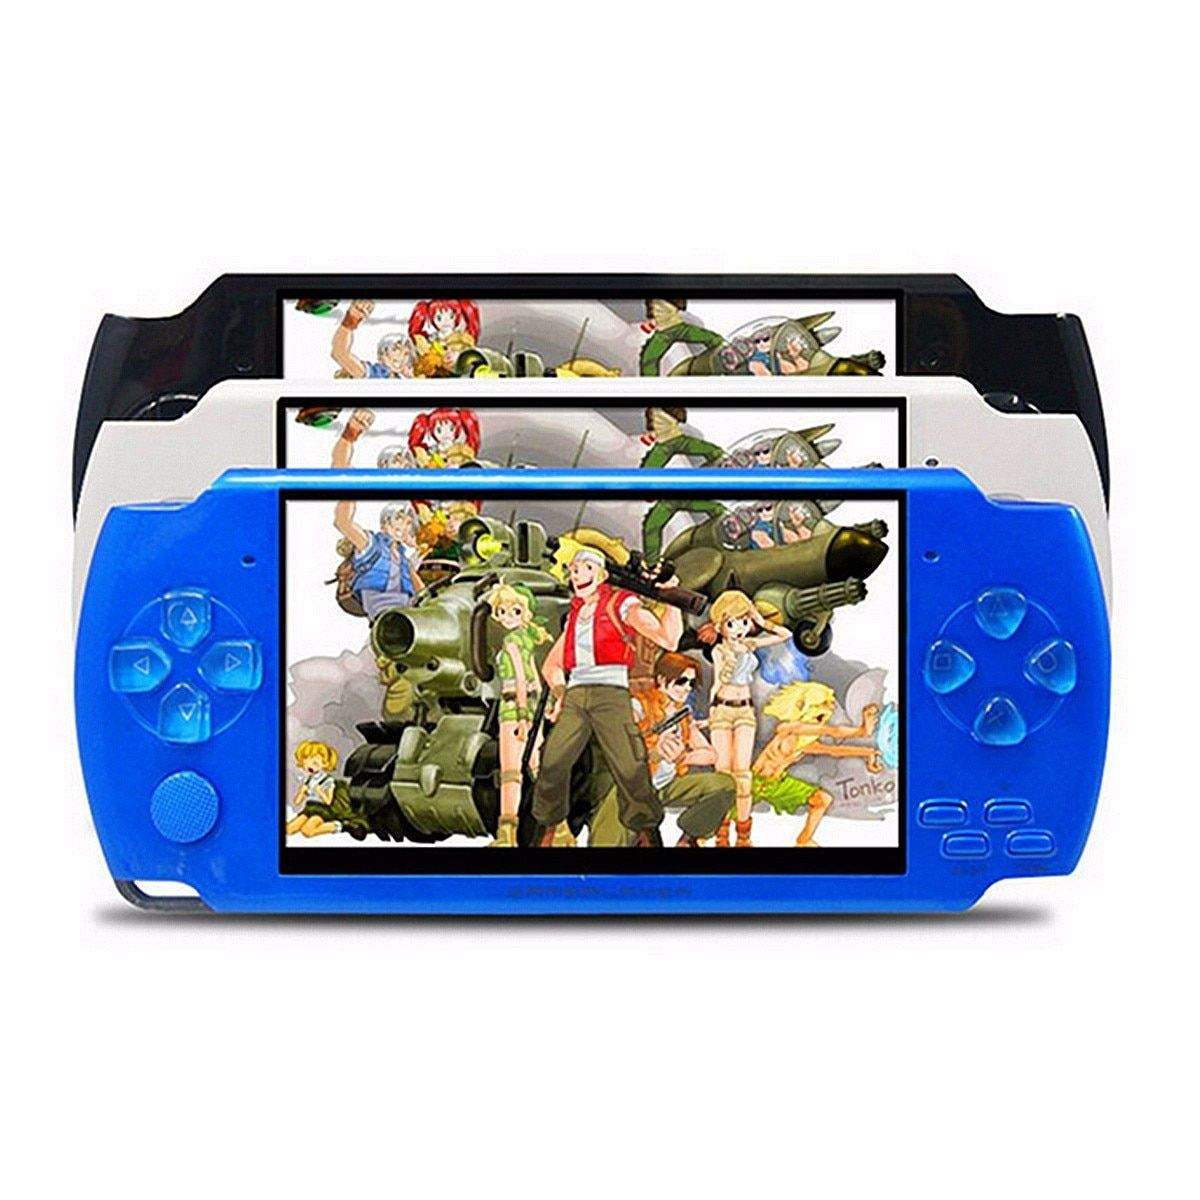 4.3 Inch Screen 32 Bit Handheld Game Players 8G Memory Portable Handheld Game Console Player Built-in 10000+ Retro Games